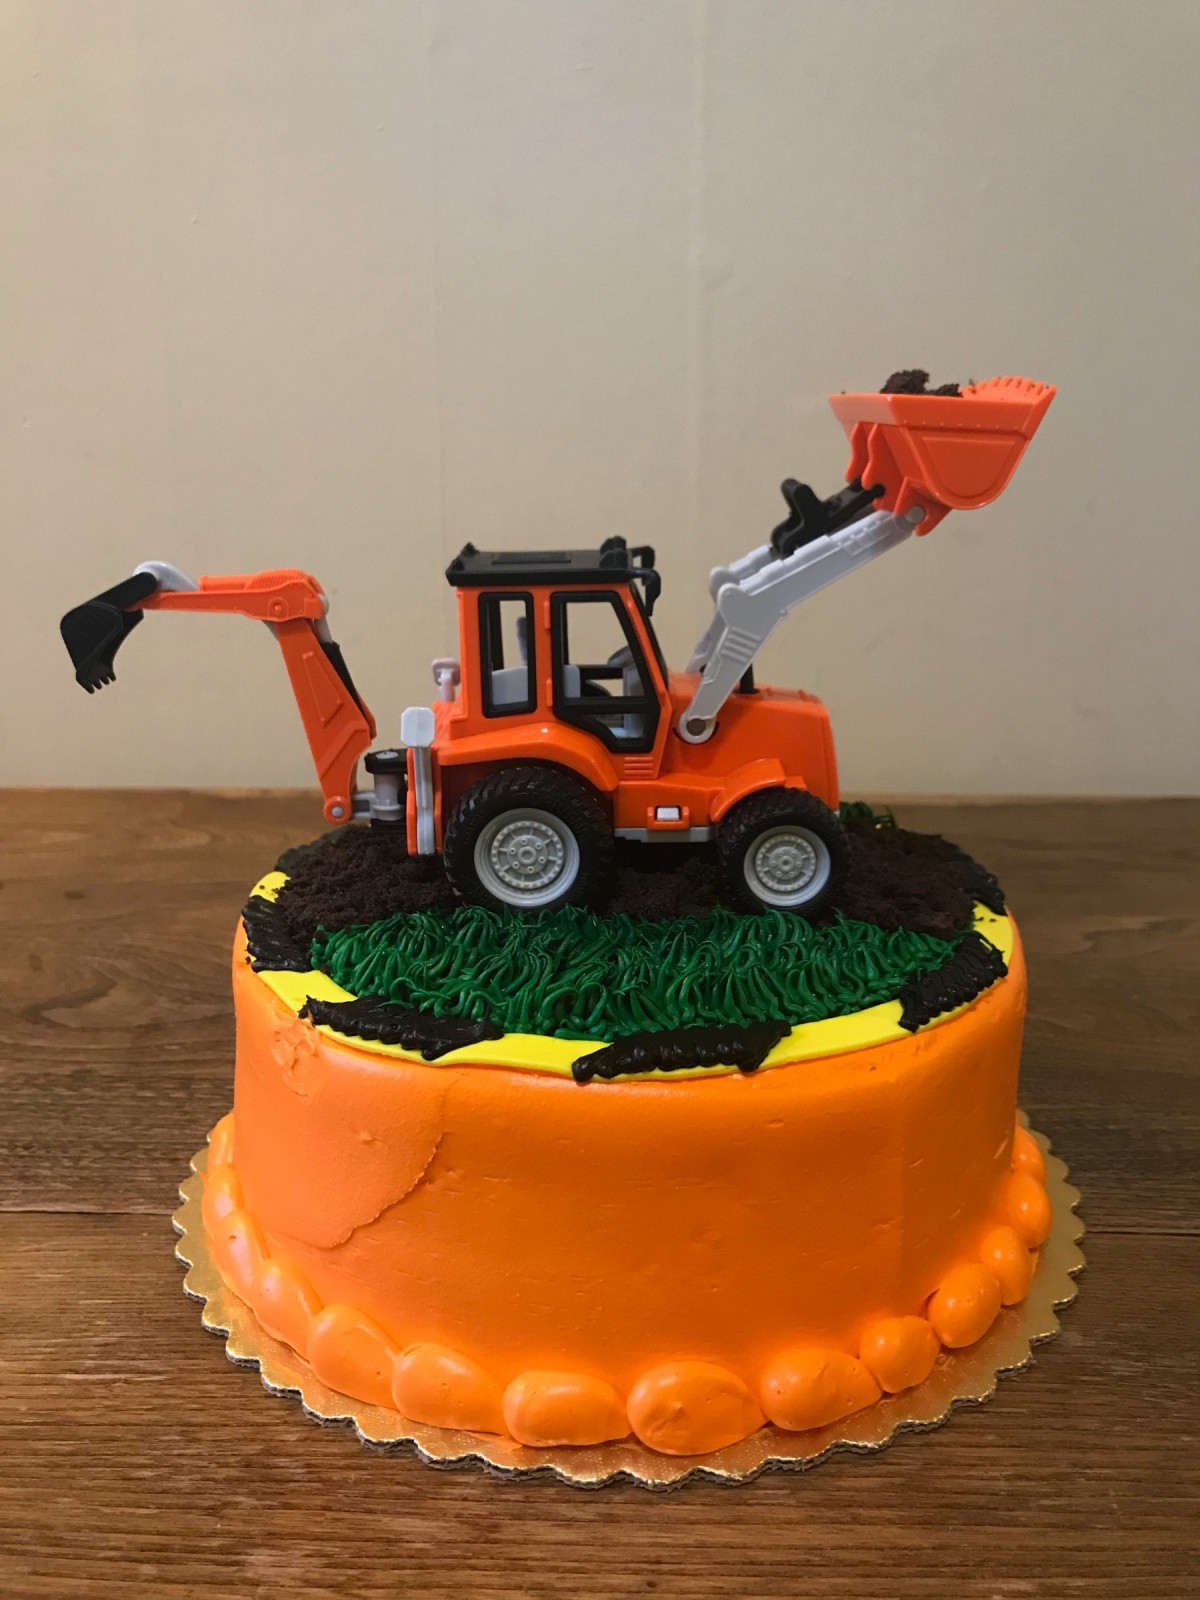 Surprising Construction Themed Birthday Cake Thriftyfun Funny Birthday Cards Online Elaedamsfinfo